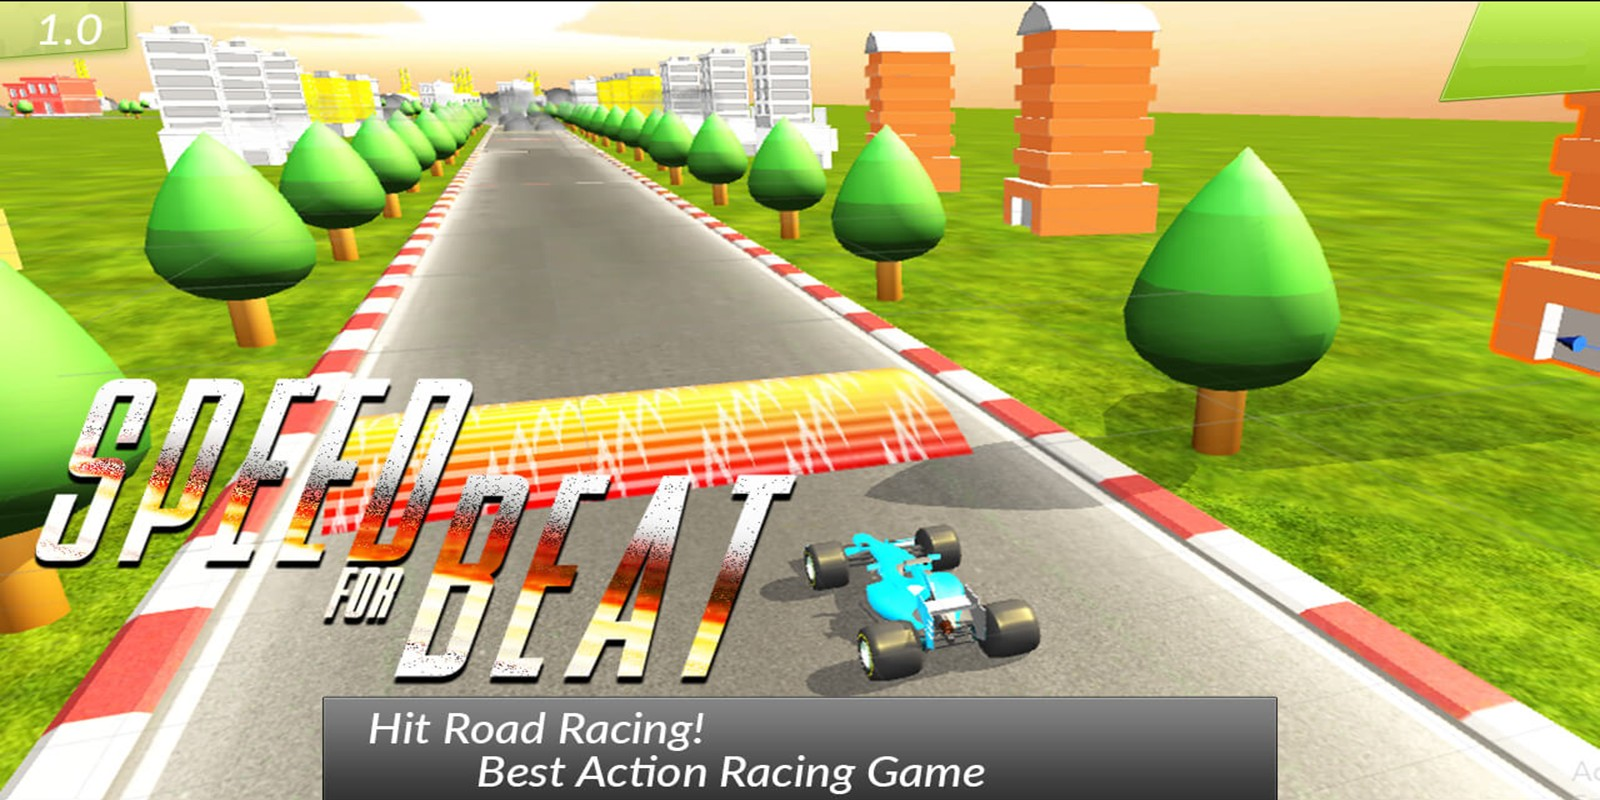 C Source Code For Car Race Game